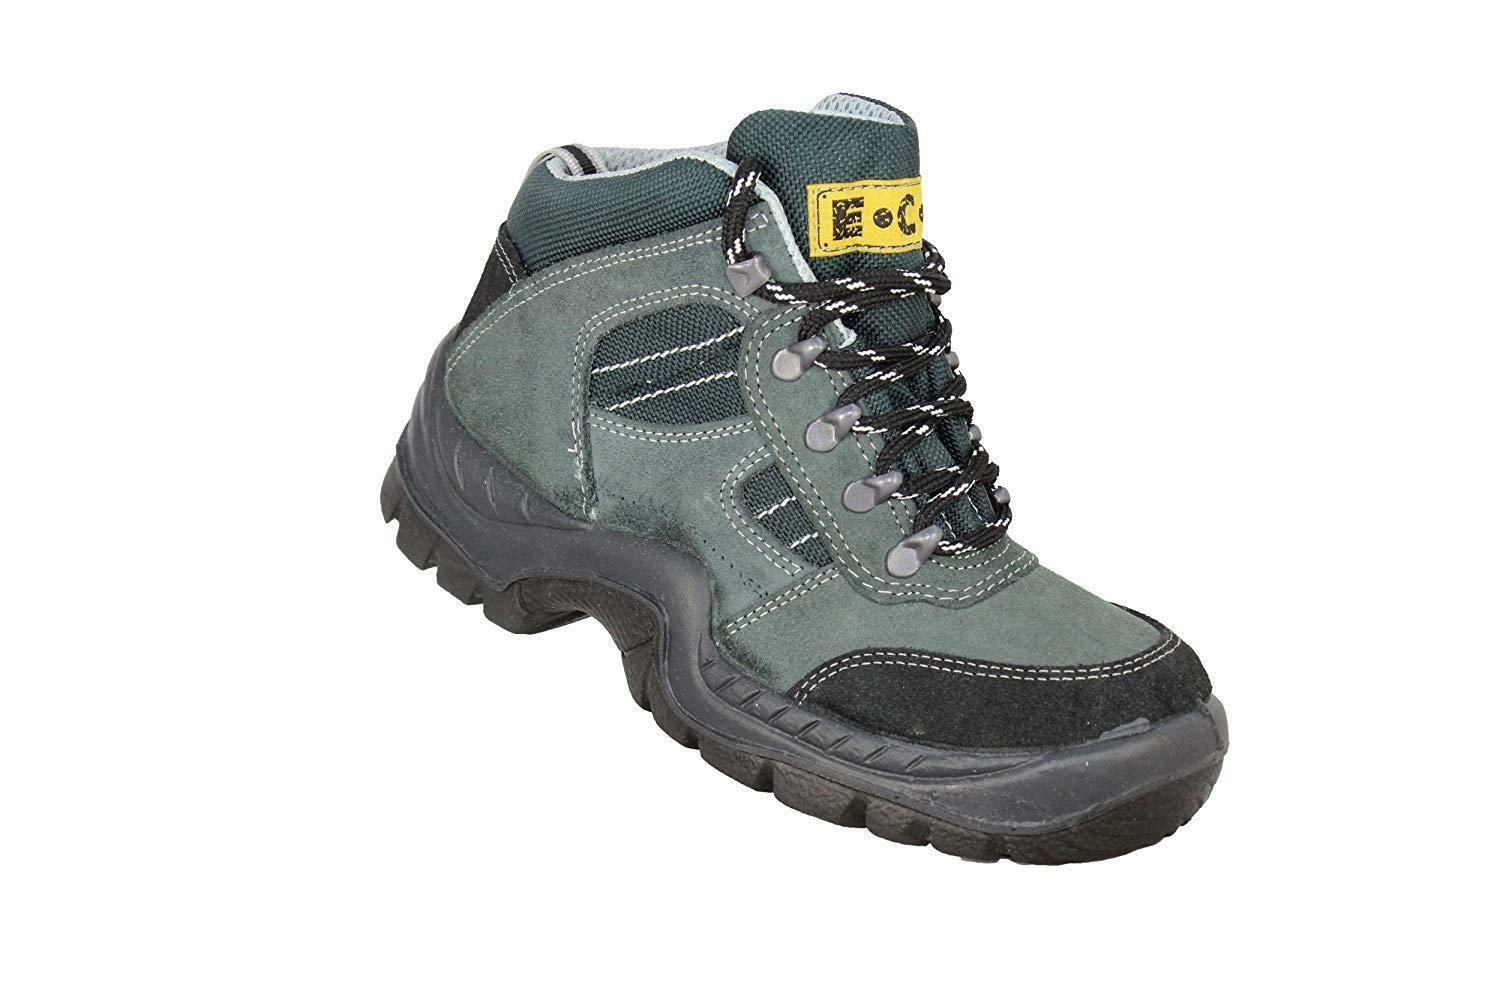 ECJ 09098 Safety Hiker Boot - SALE PRICE